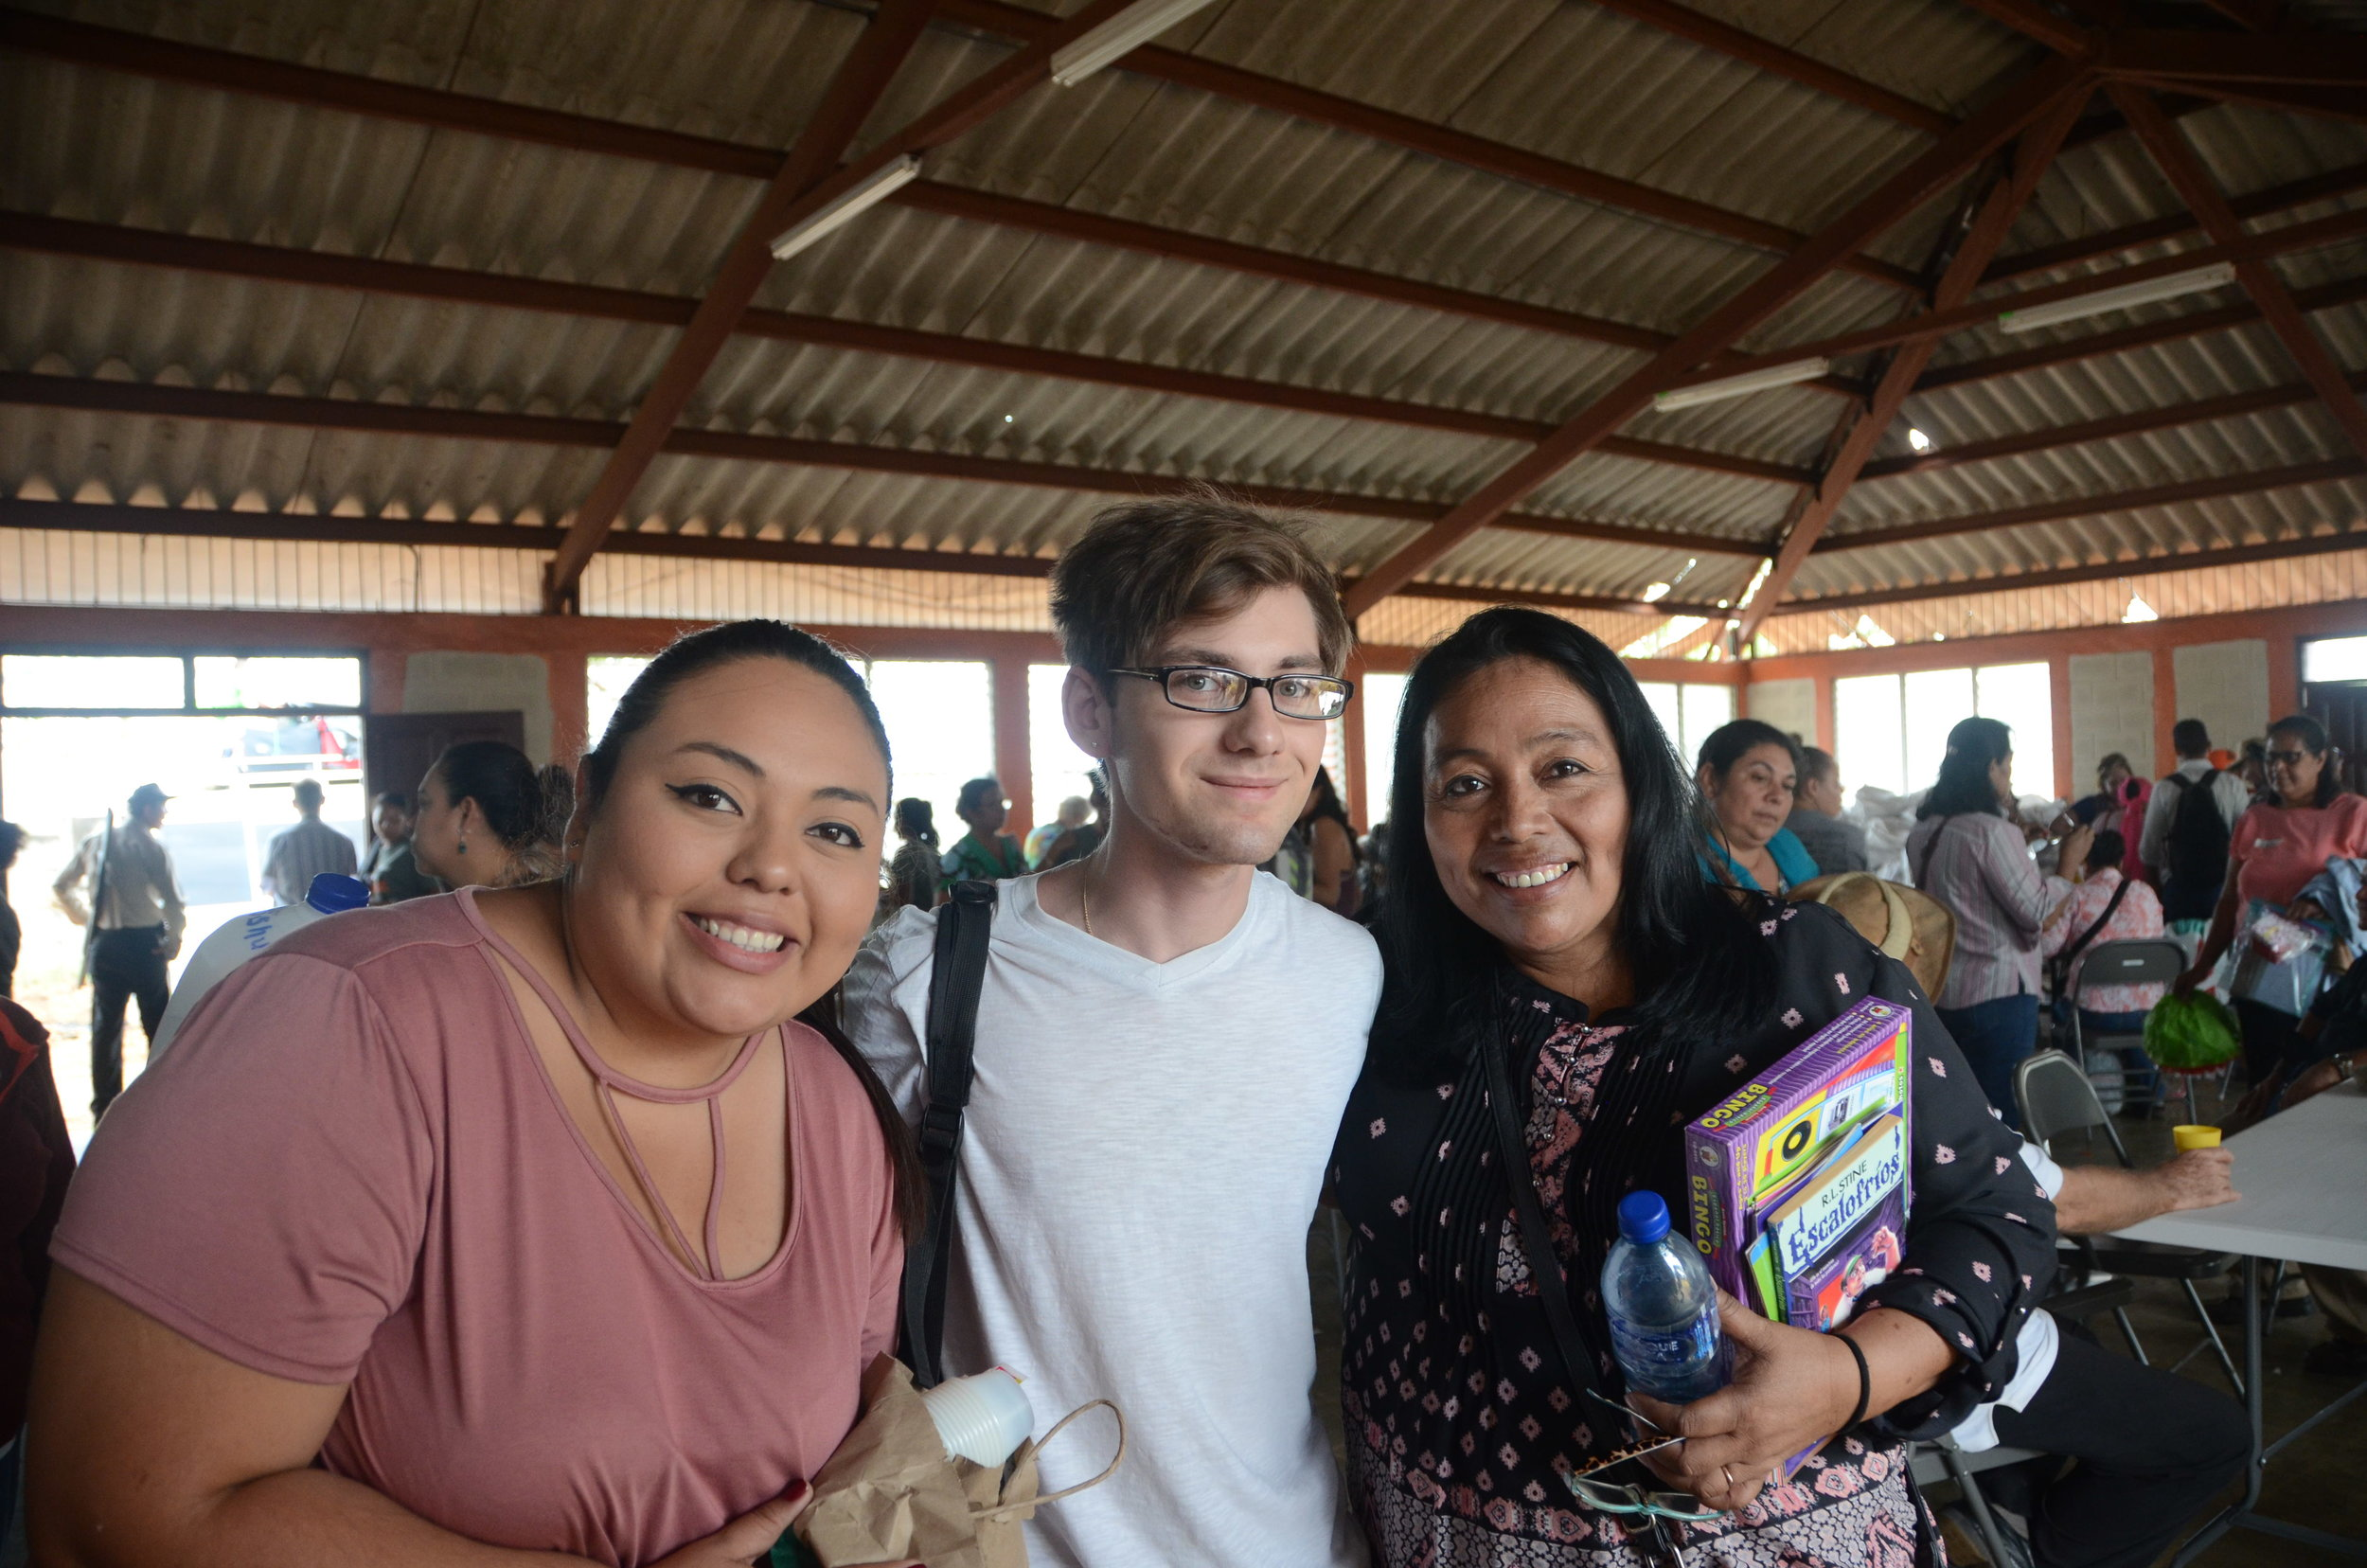 Pictured here are Rosa and Karen, along with Abishua. They have been to our house and we love being at their house. Rosa is the one who is in charge of this learning center, who I am so proud of!